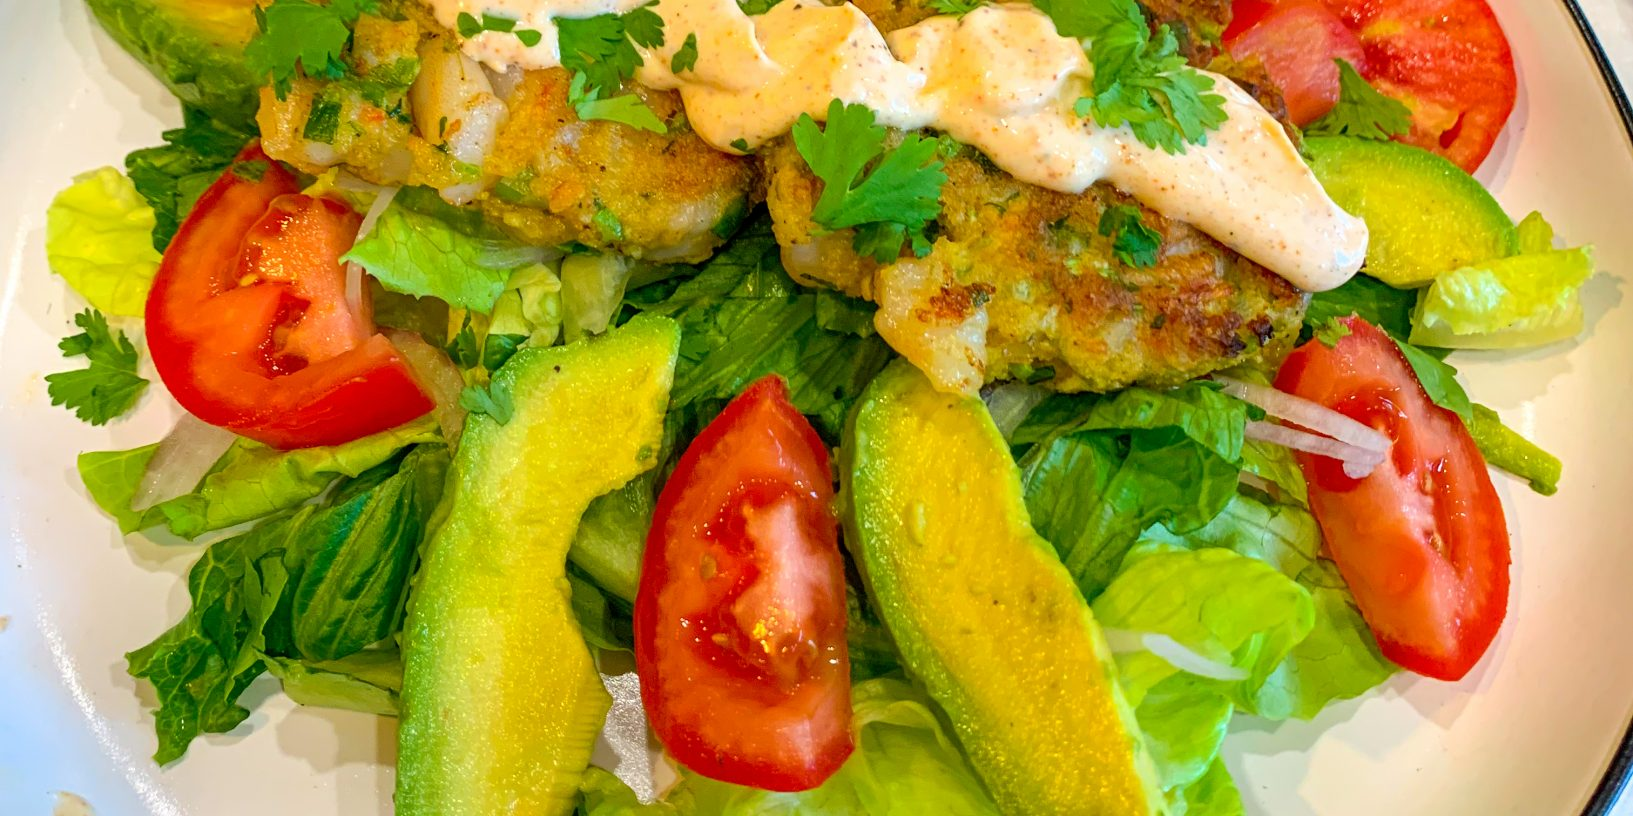 Shrimp Cakes or Burgers with Spicy Aioli Sauce